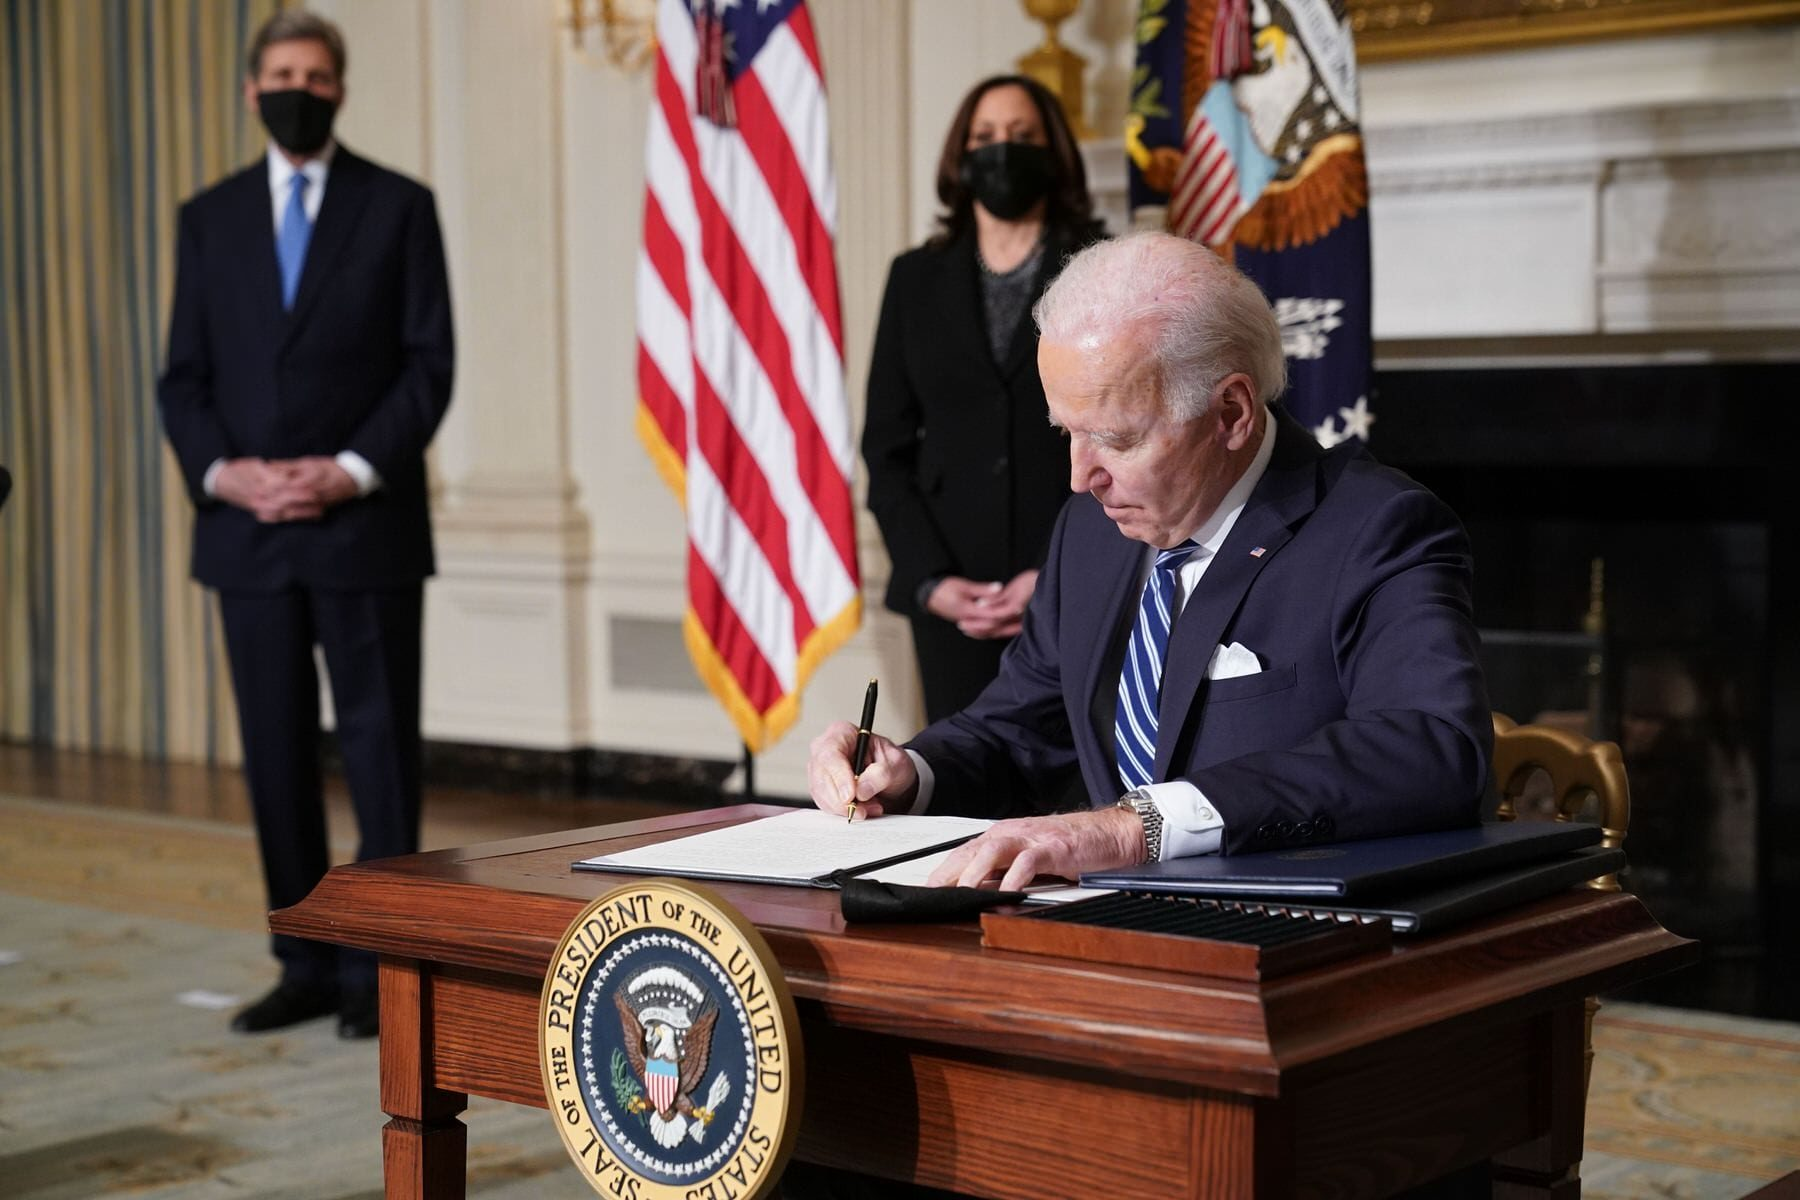 US Vice President Kamala Harris and Special Presidential Envoy for Climate John Kerry watch as US President Joe Biden signs executive orders.